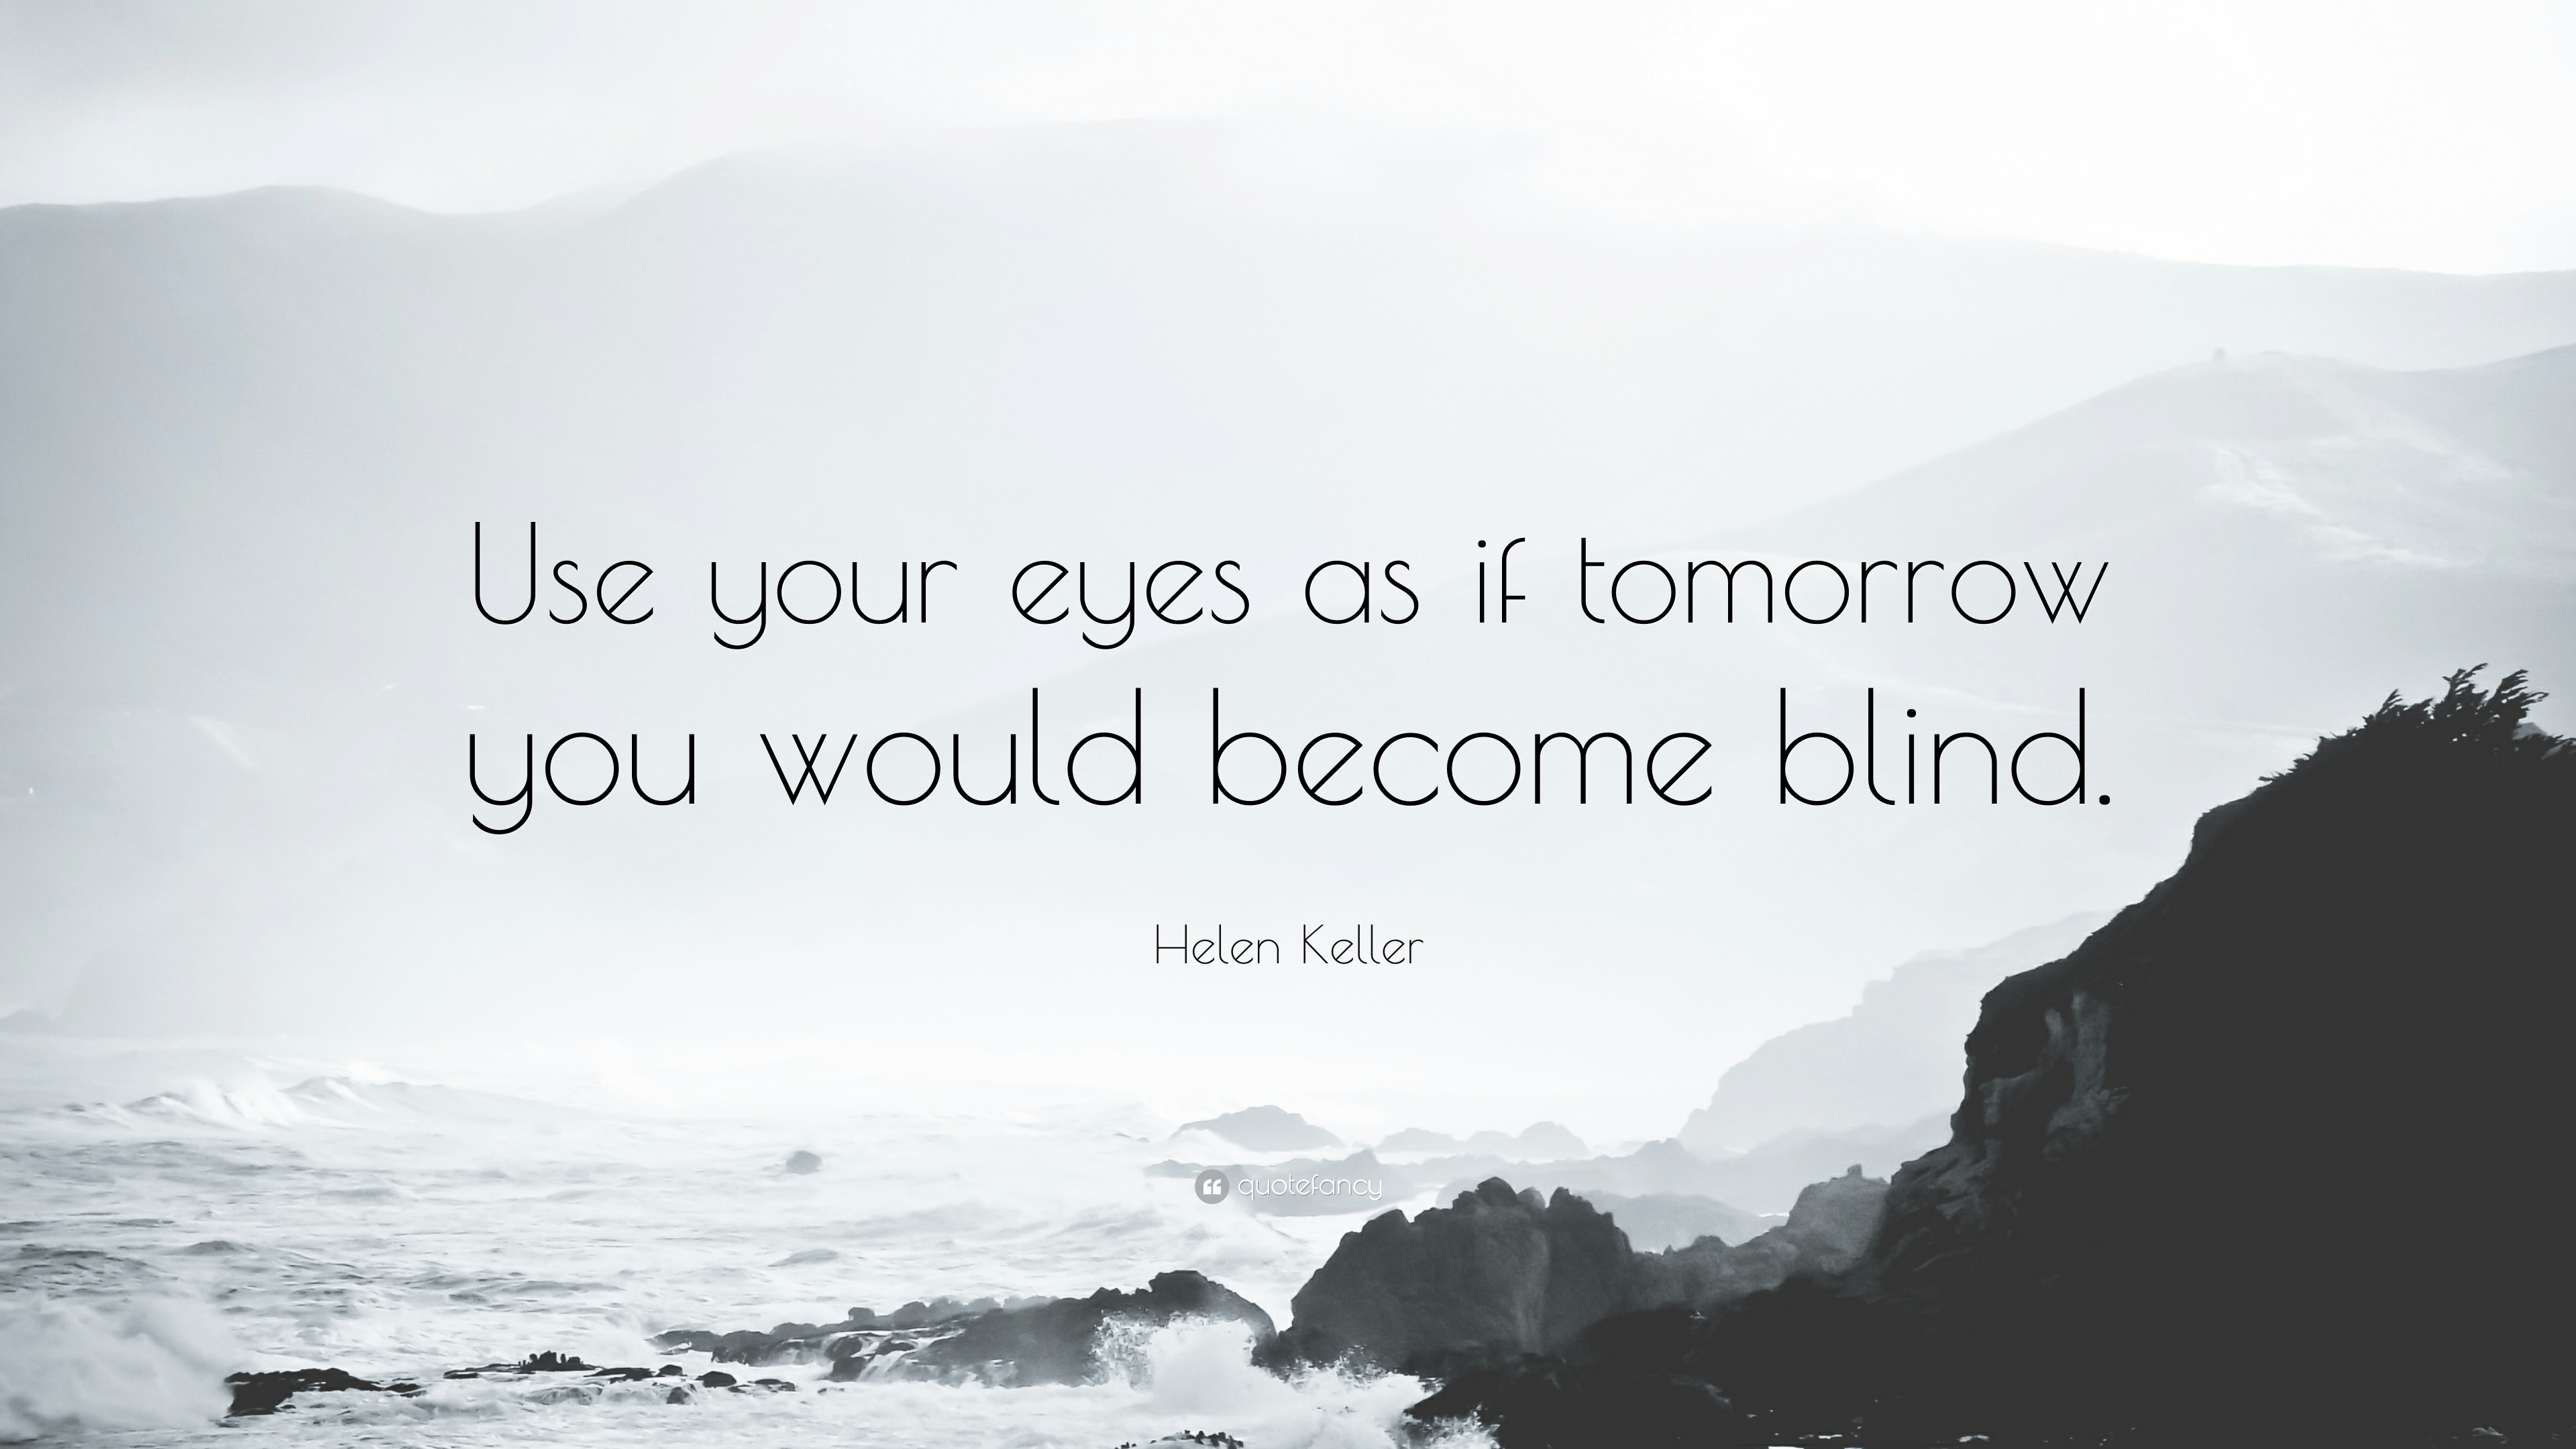 Helen keller quote use your eyes as if tomorrow you would become helen keller quote use your eyes as if tomorrow you would become blind altavistaventures Image collections